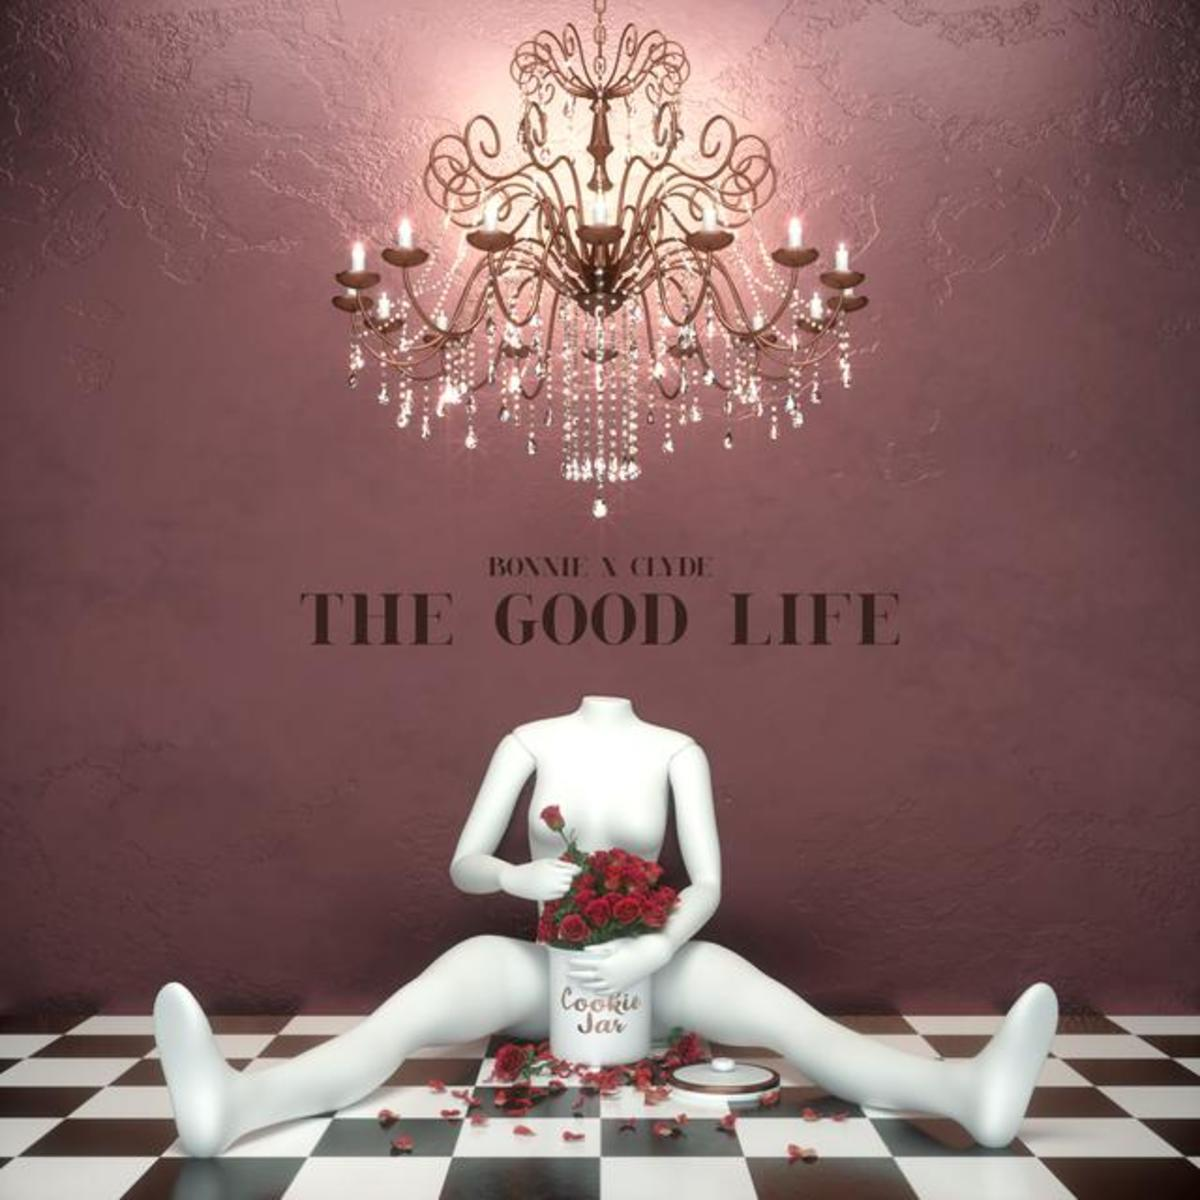 """BONNIE X CLYDE Release Official Music Video for Ultra Music Debut """"The Good Life"""""""